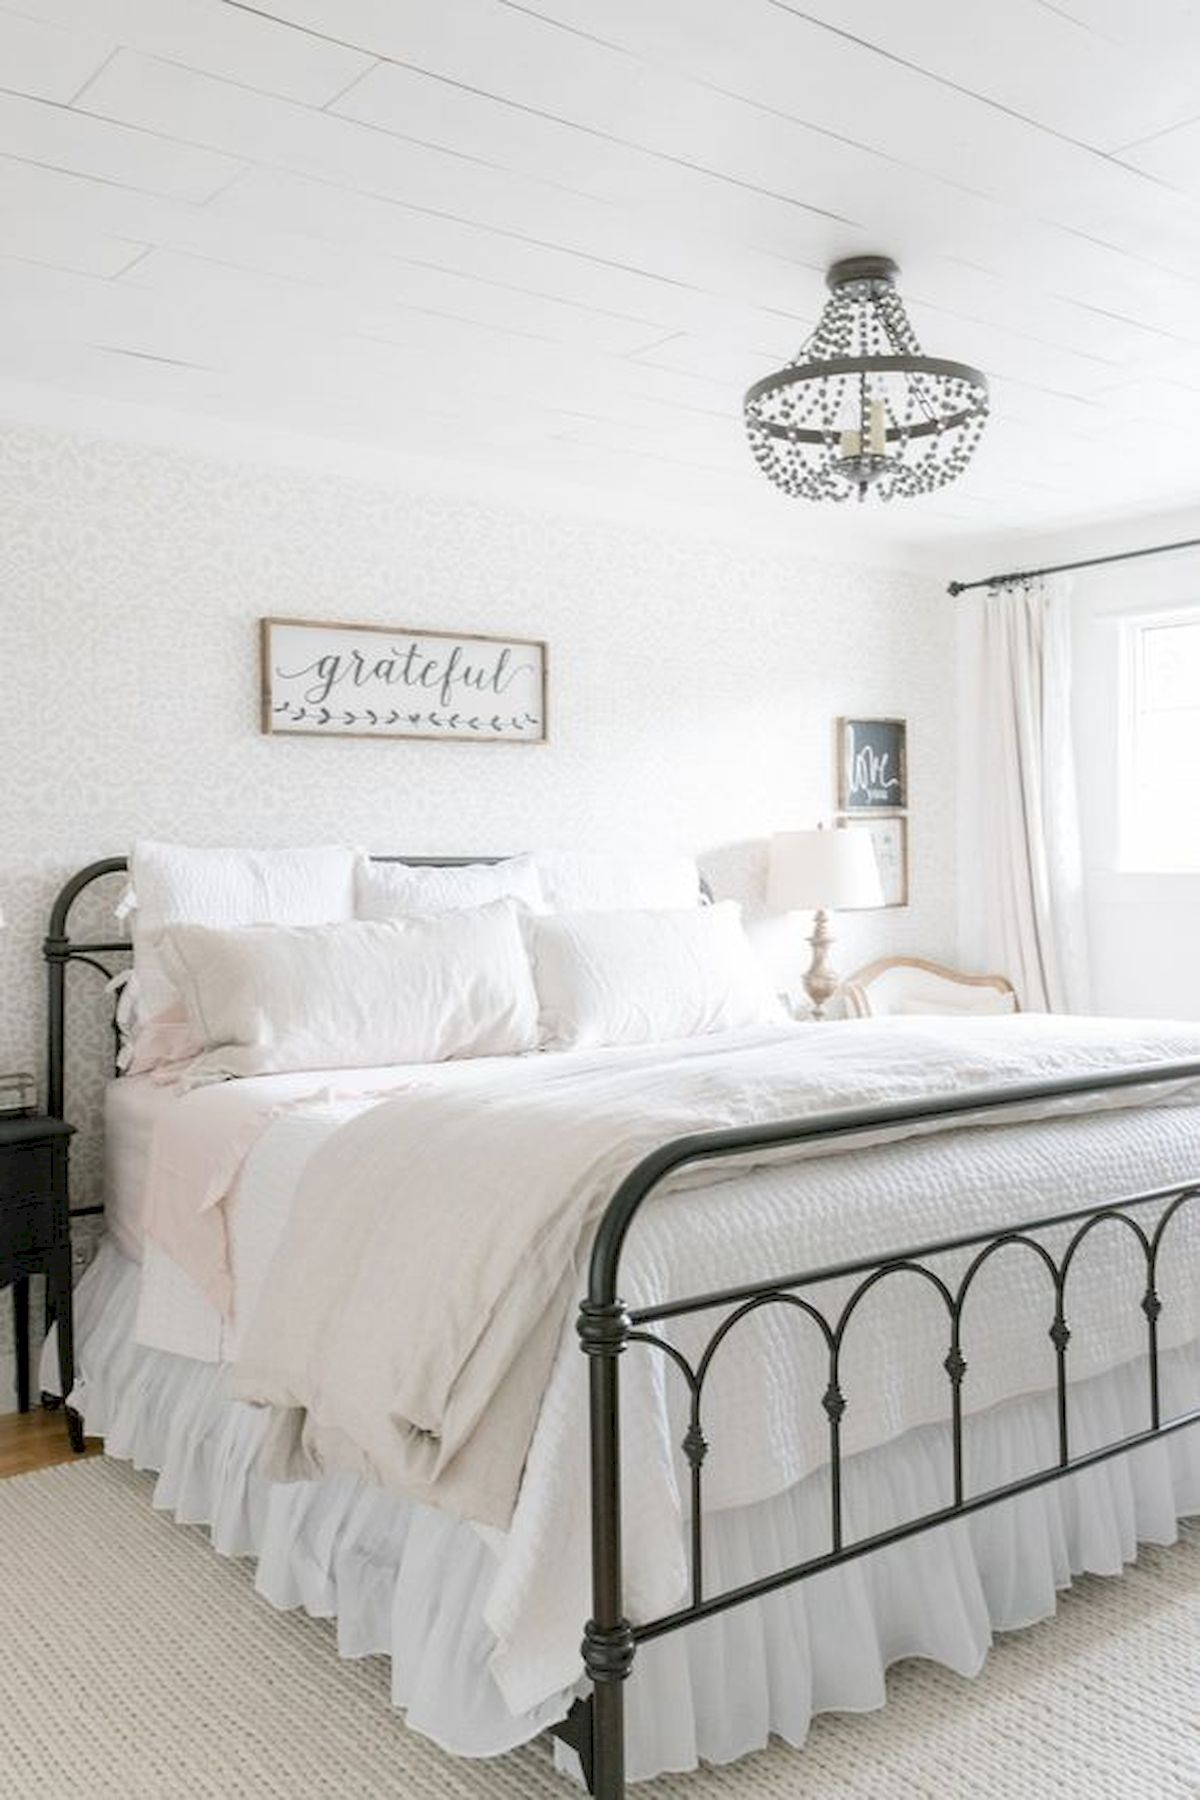 37 Simple Summer Bedroom Decor Ideas (10)